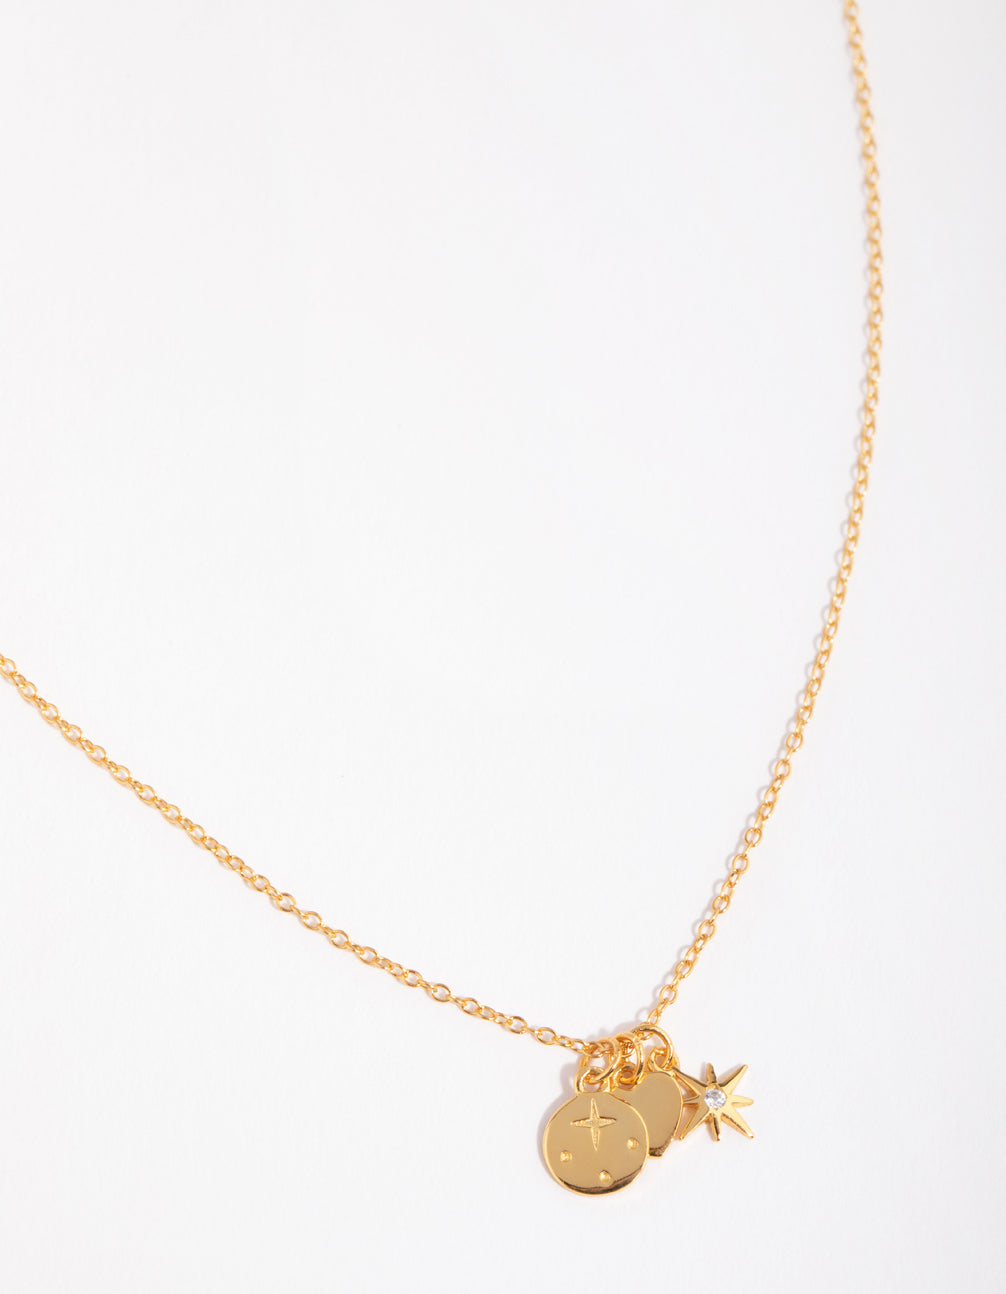 Gold Plated Sterling Silver Celestial Charm Necklace